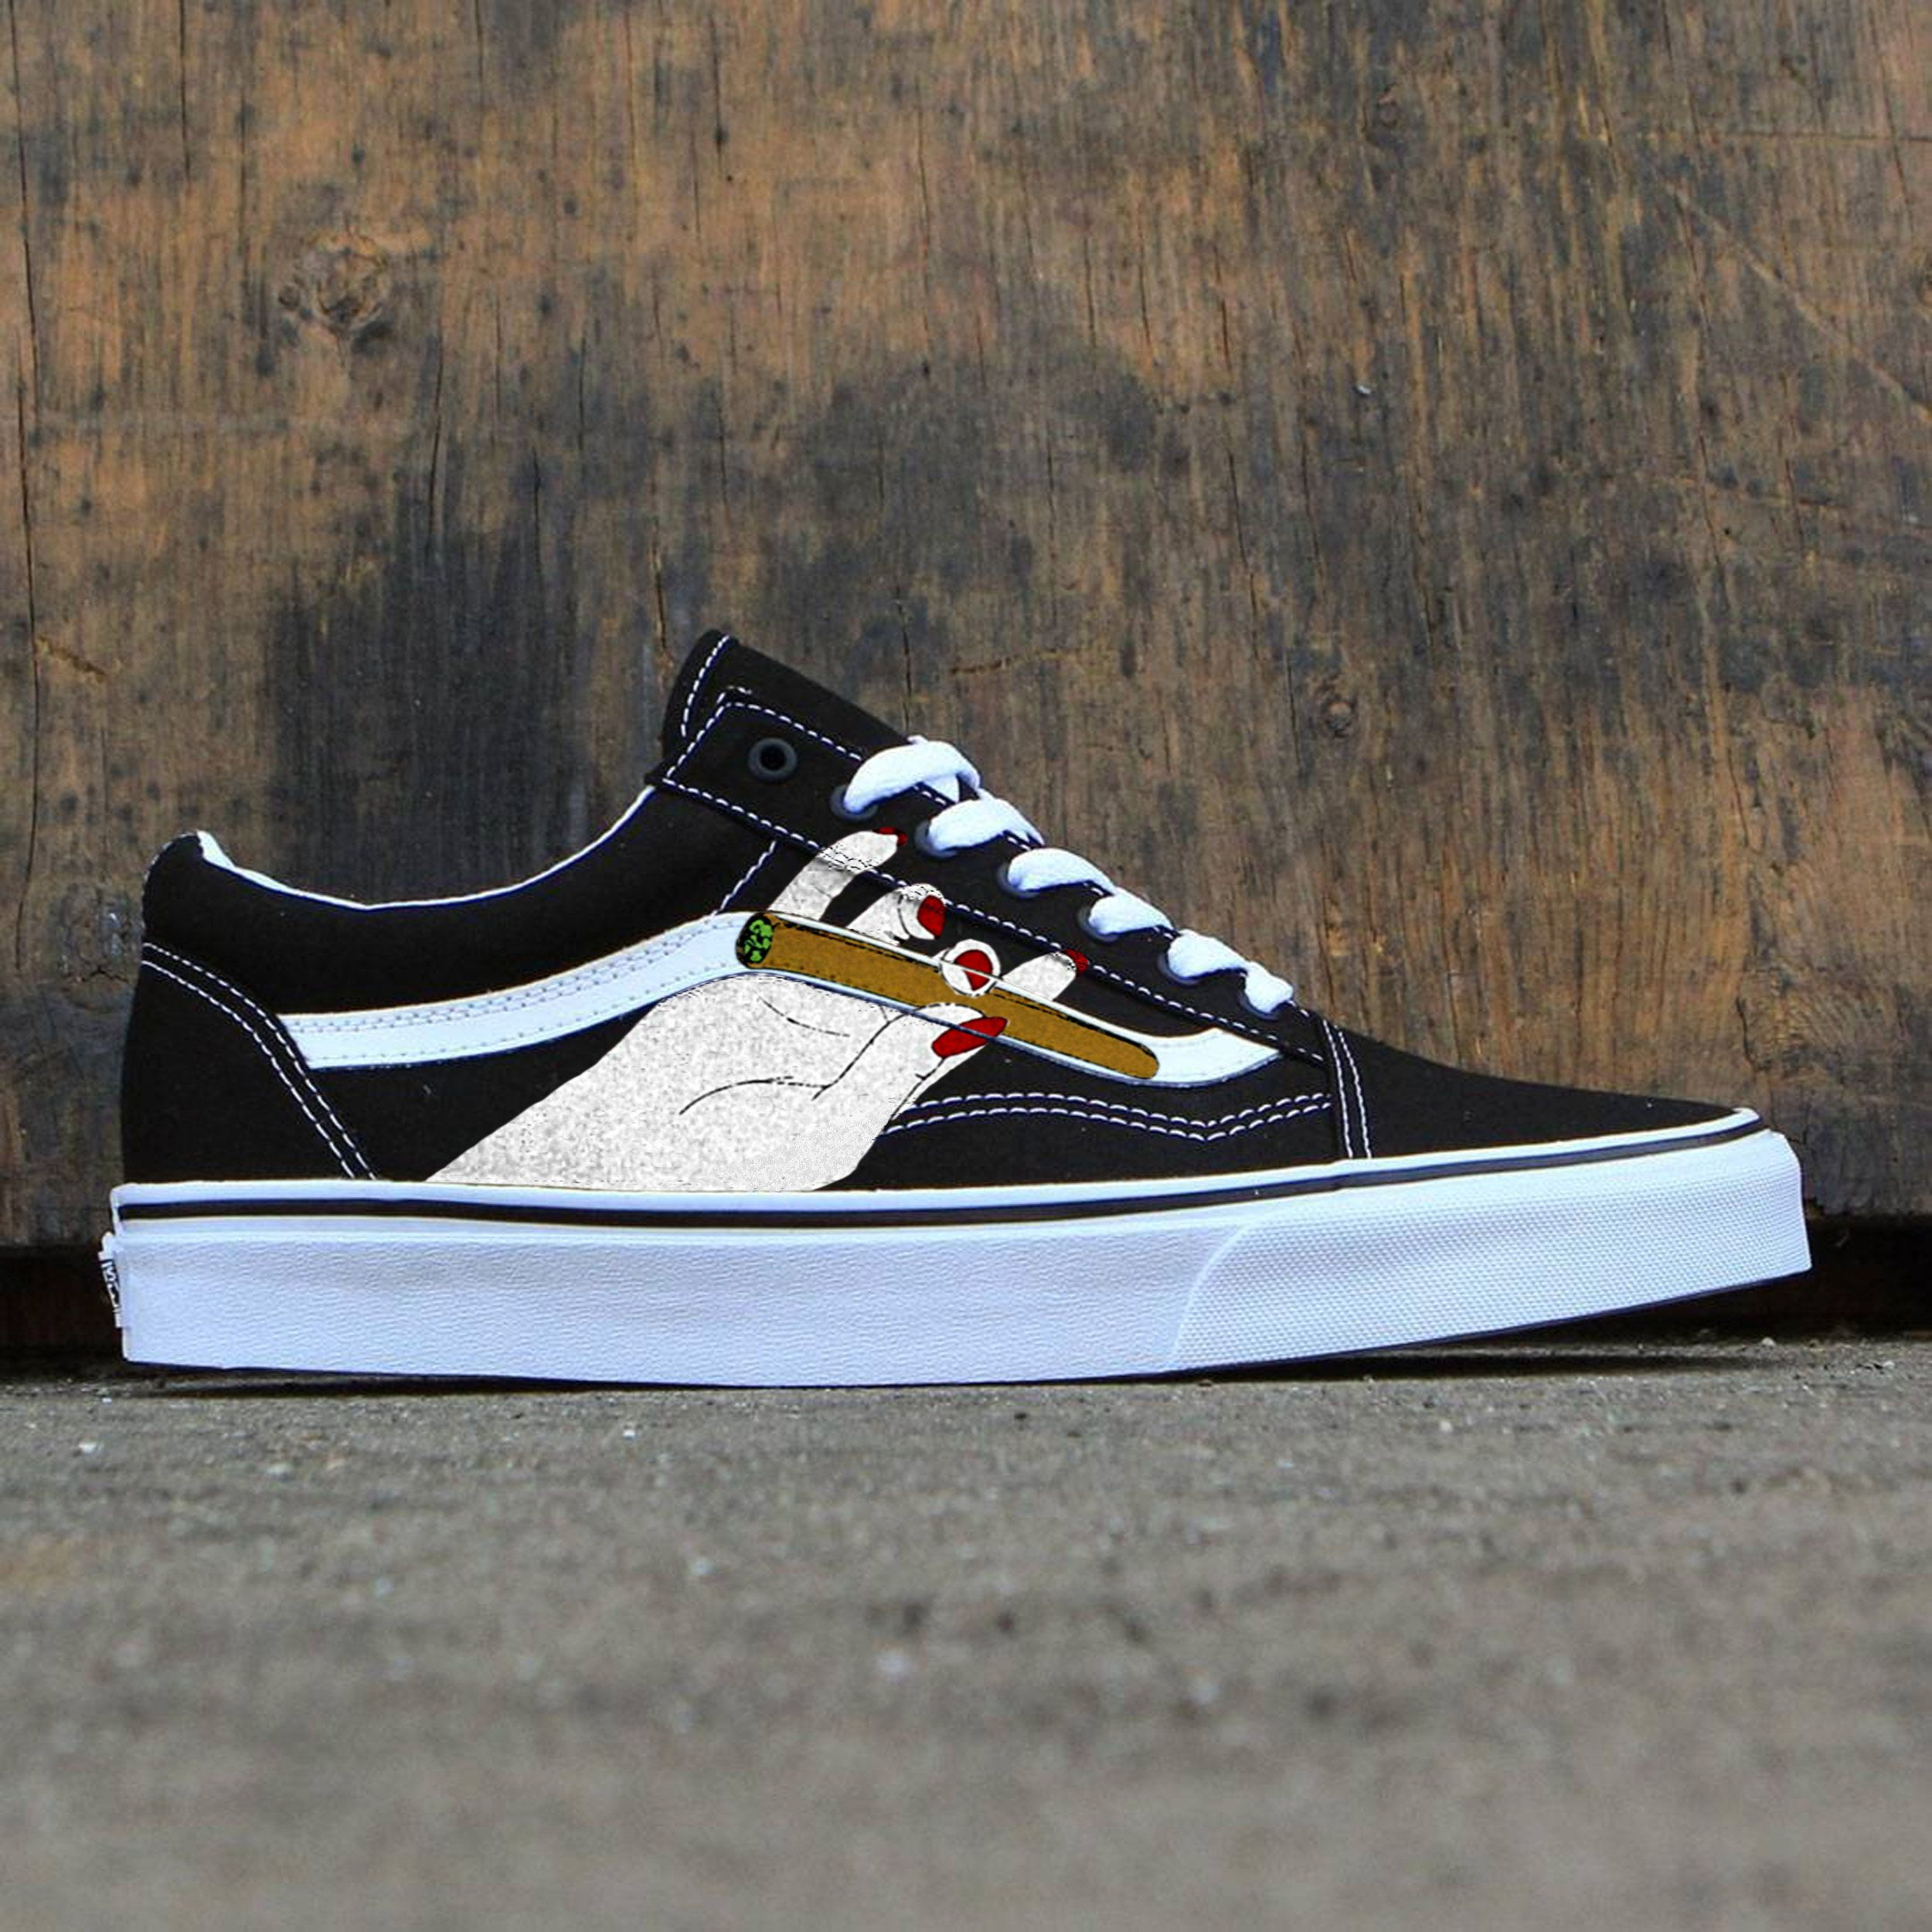 vans old skool custom - www.cytal.it f5120c1af